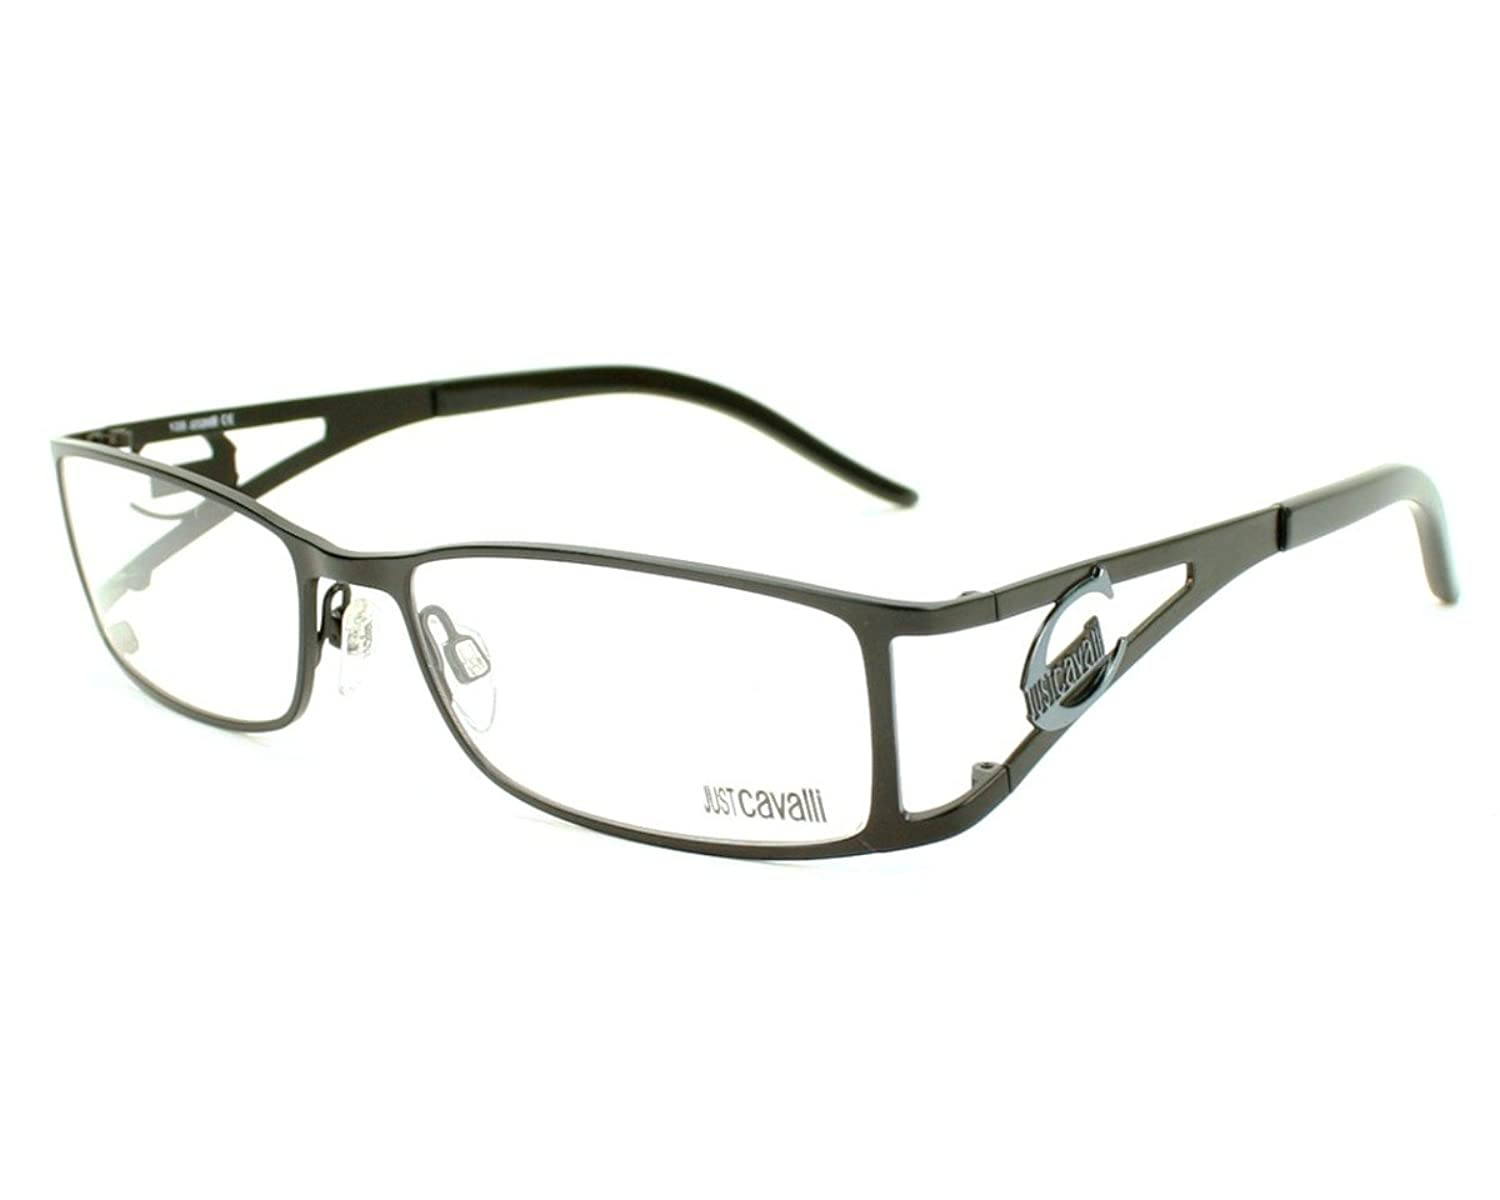 Just Cavalli Brille JC0115 BR: Amazon.de: Bekleidung